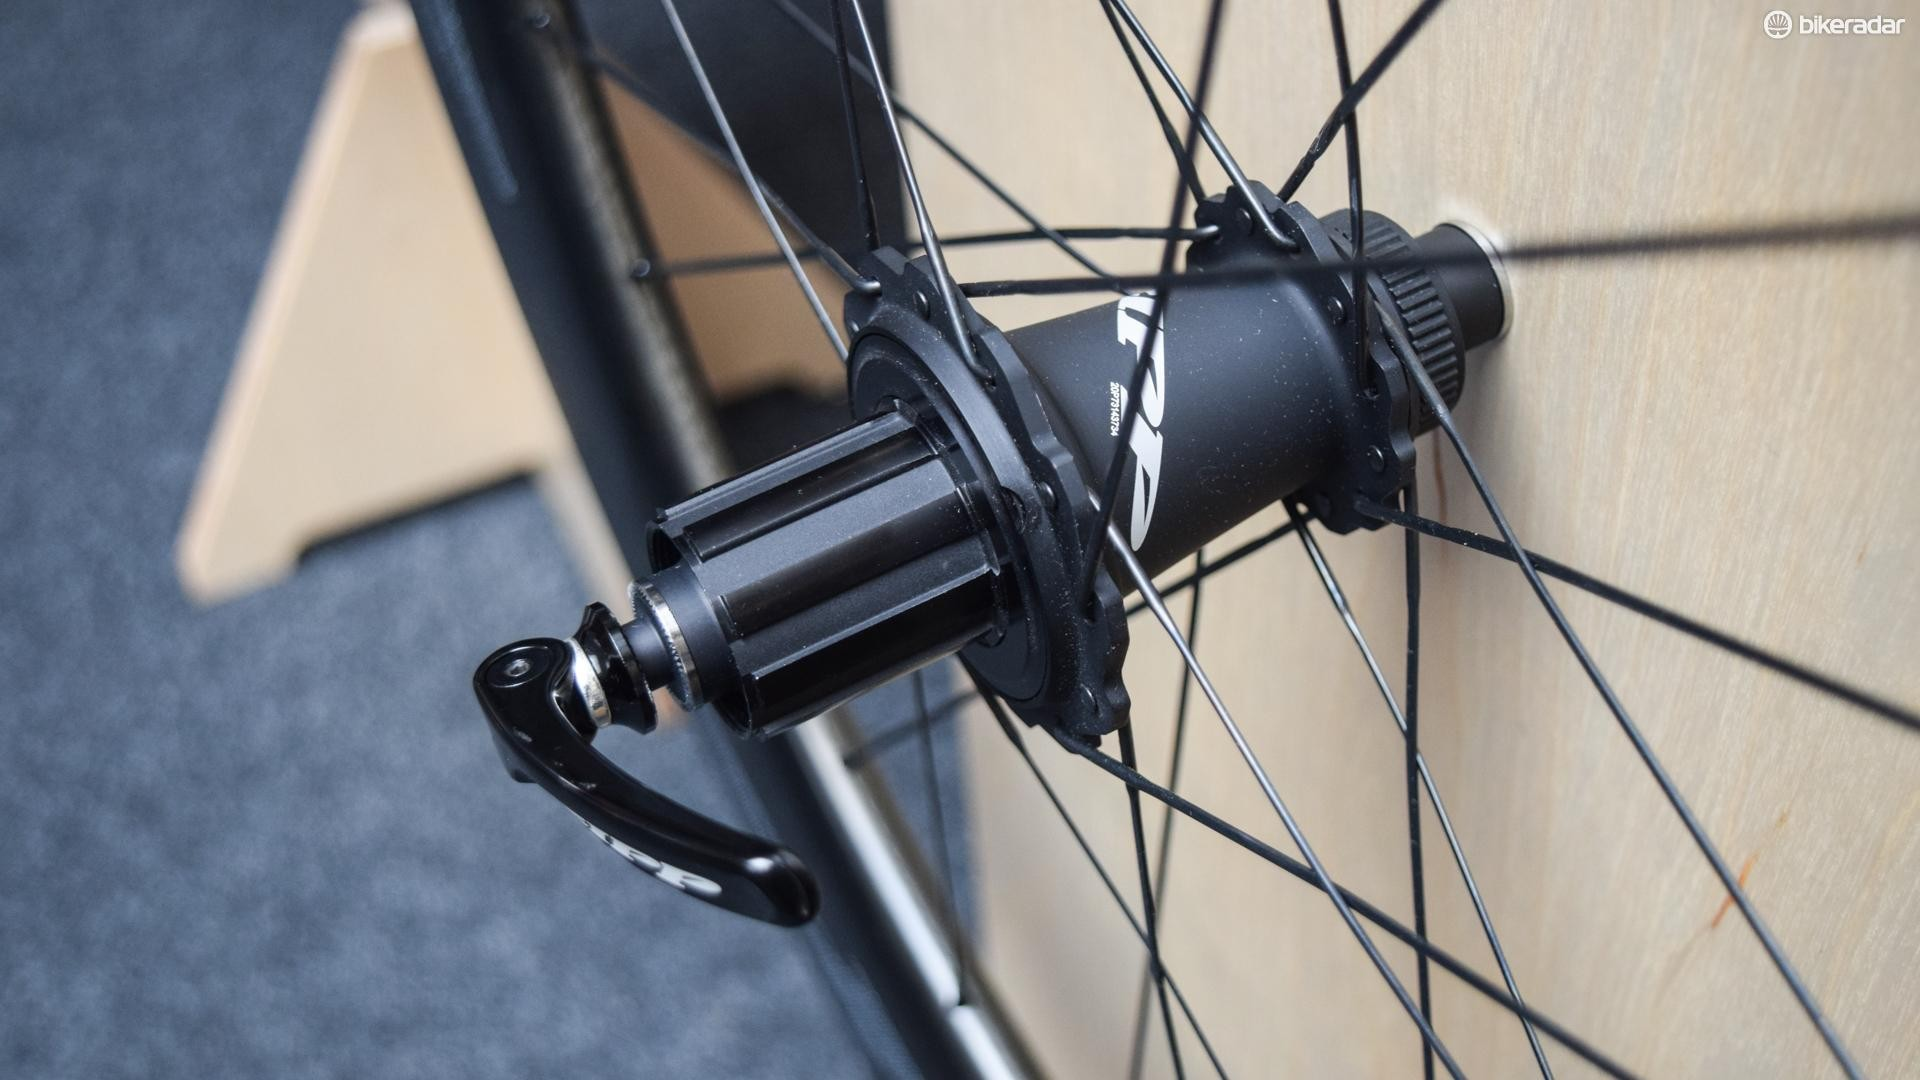 The NSW models get Zipp's latest and greatest Cognition hubs